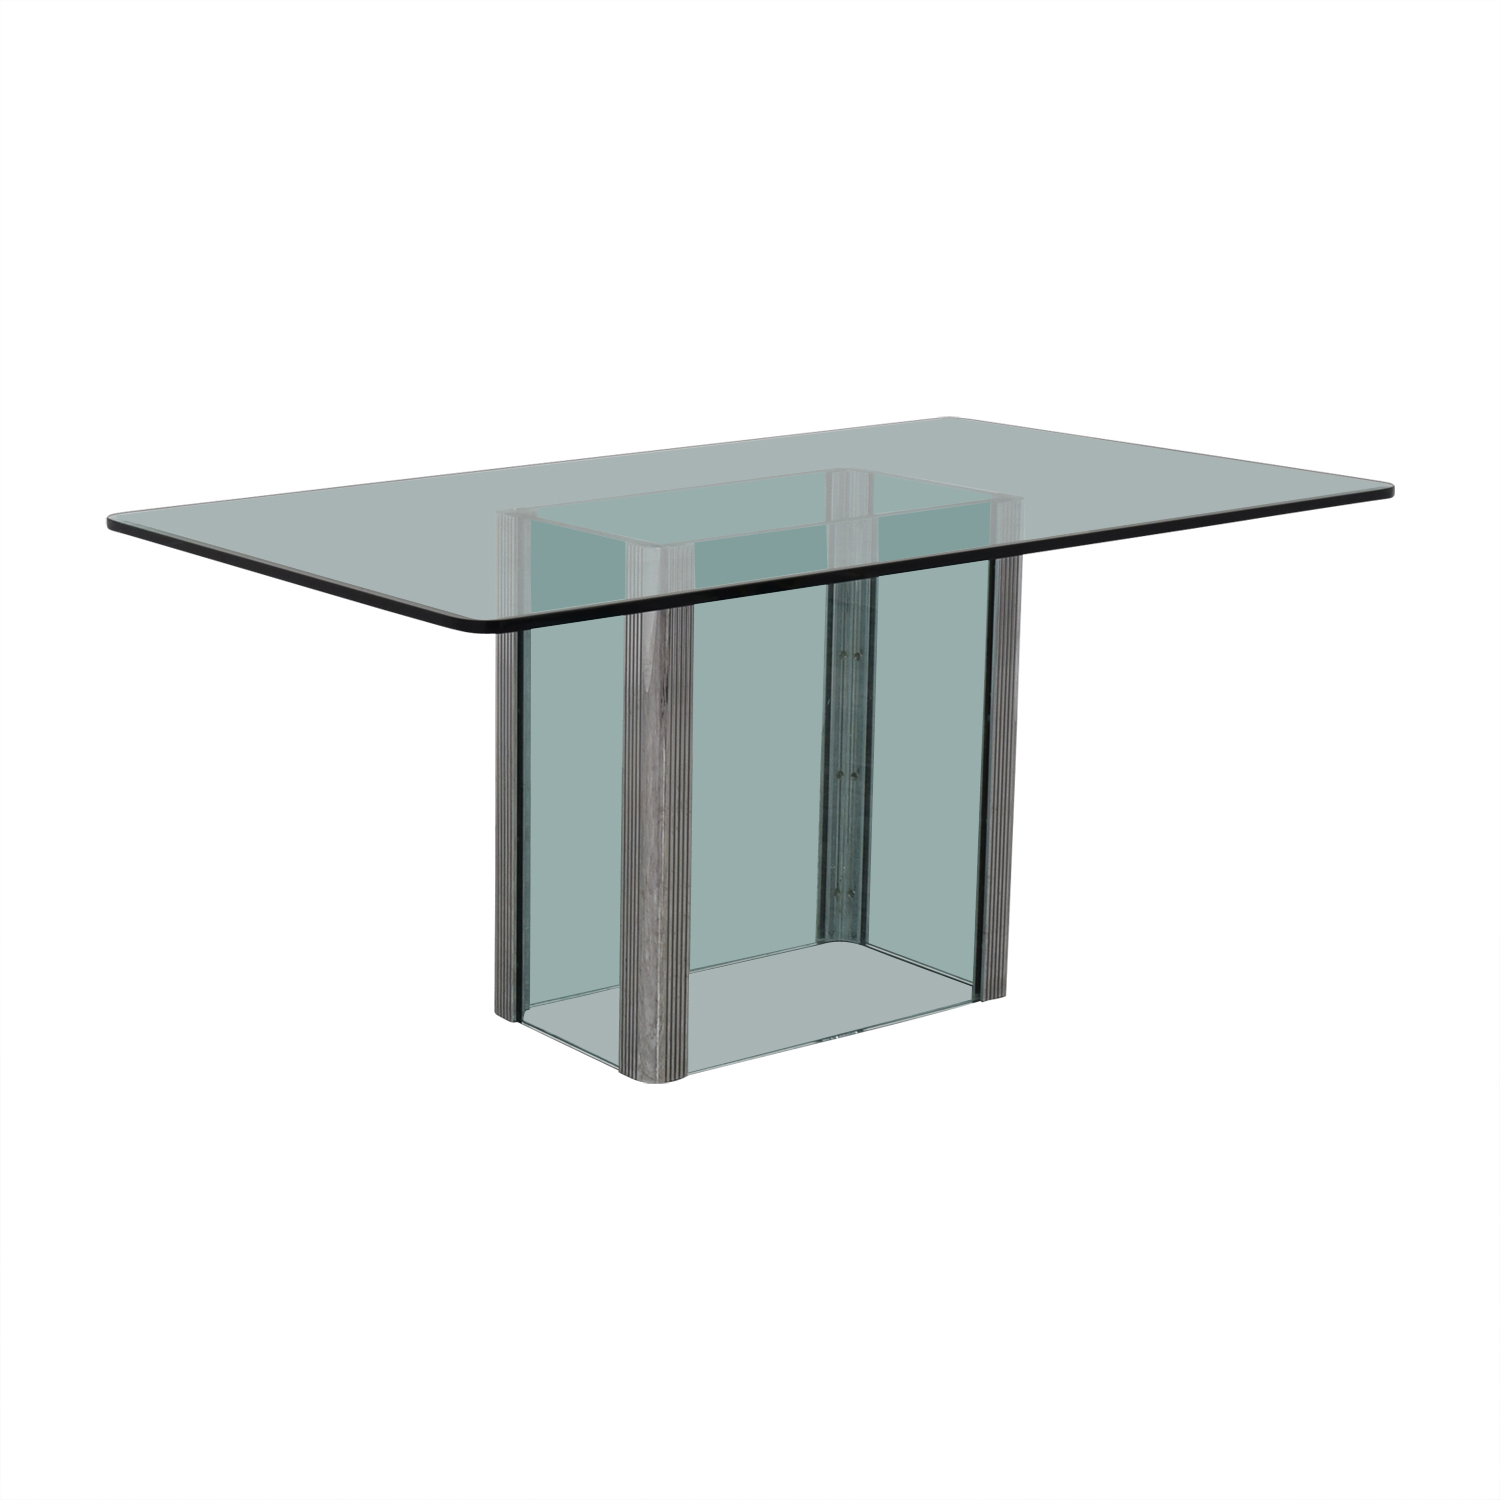 90 off glass and chrome dining table tables. Black Bedroom Furniture Sets. Home Design Ideas